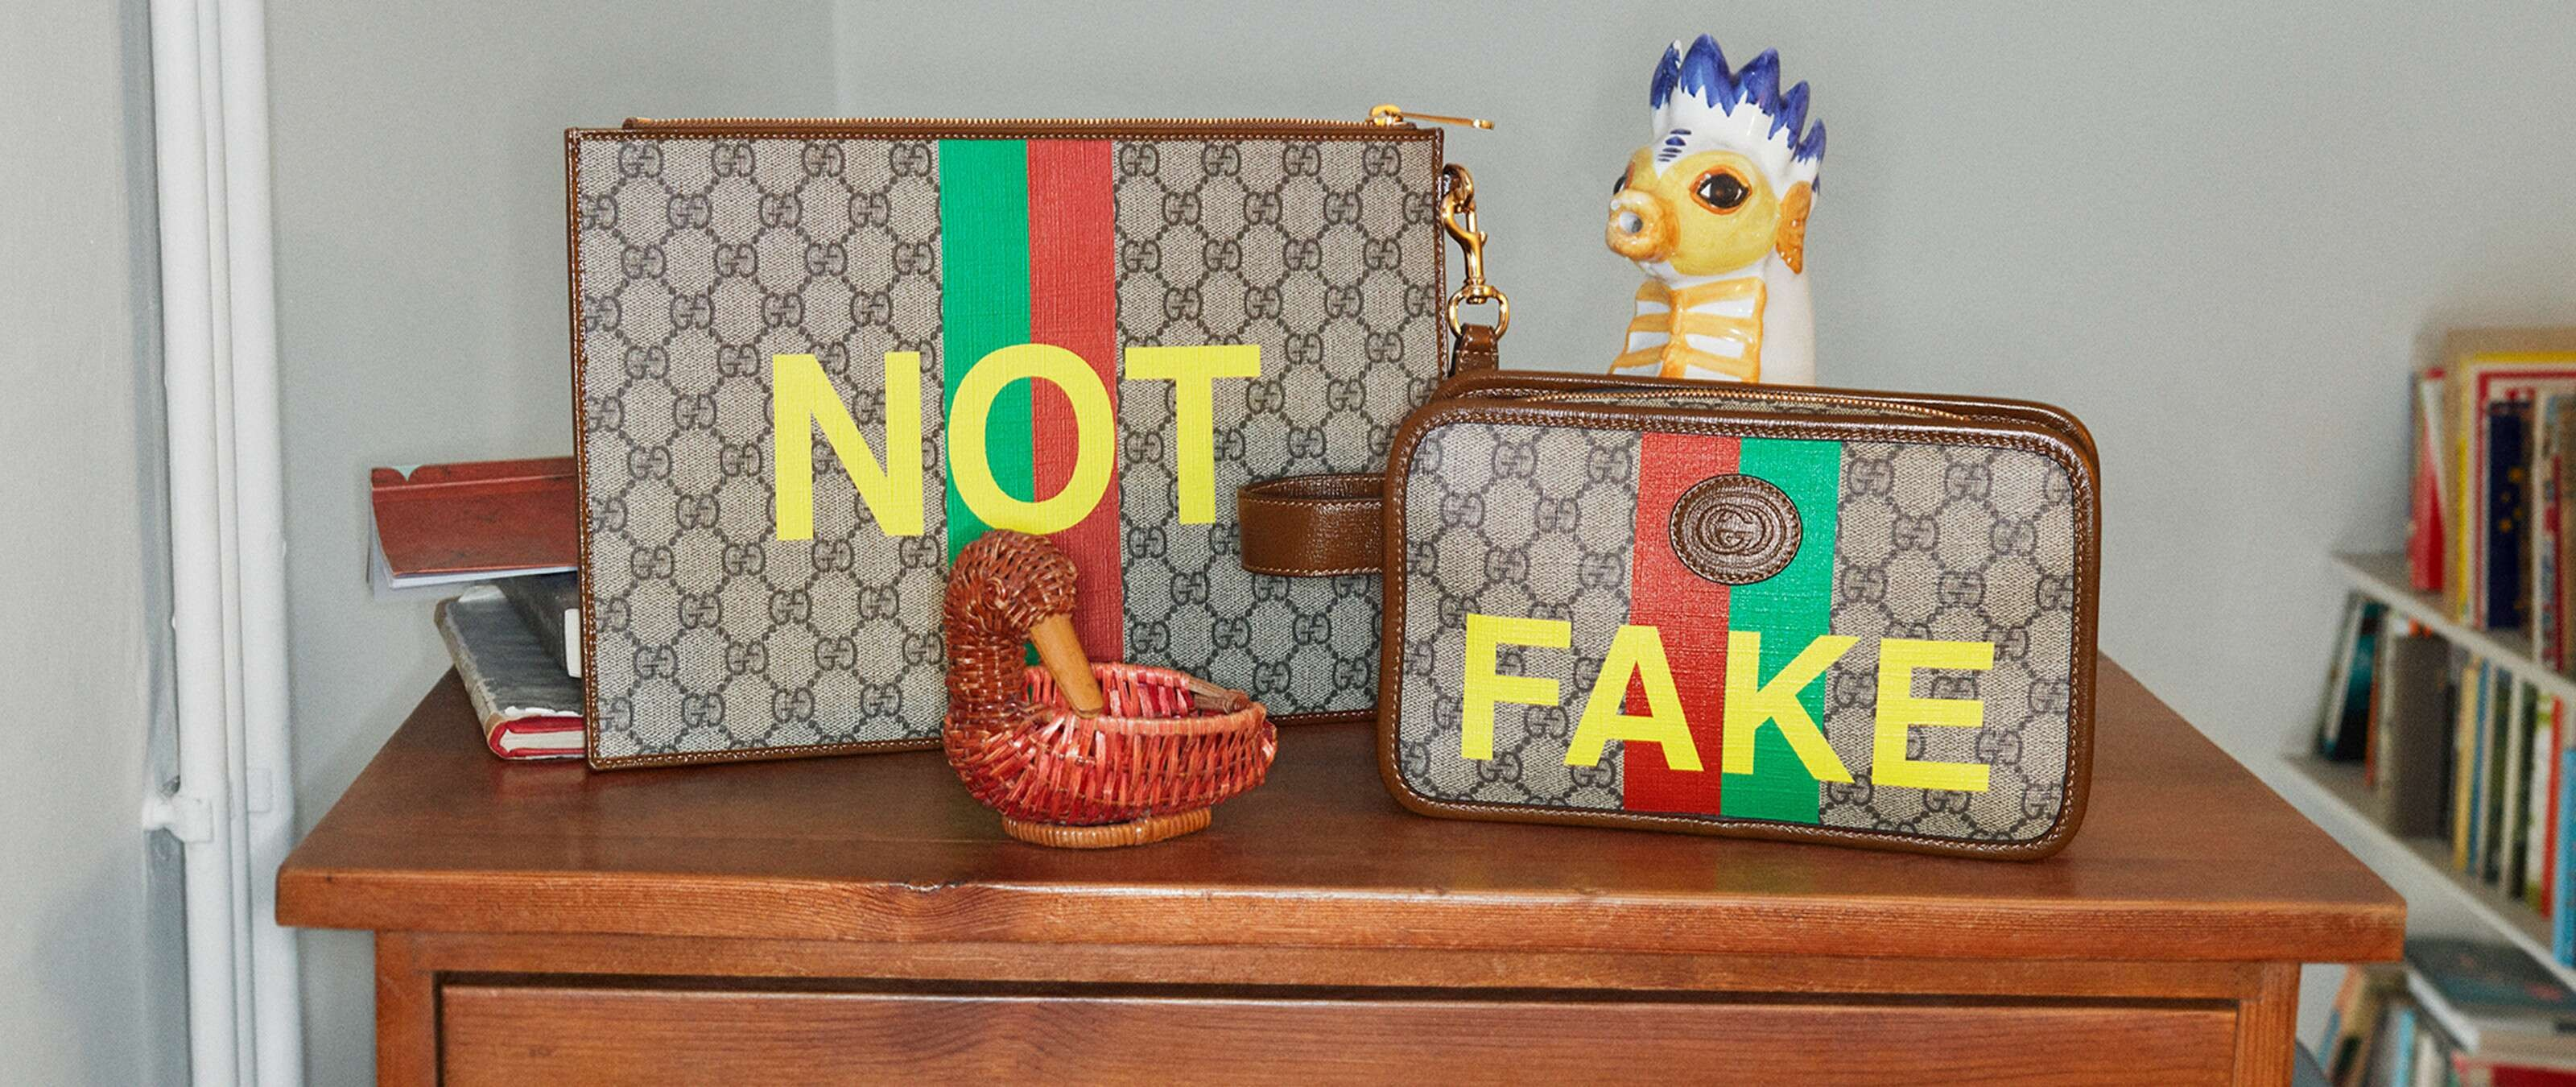 Fake Gucci / no, a new provocation.